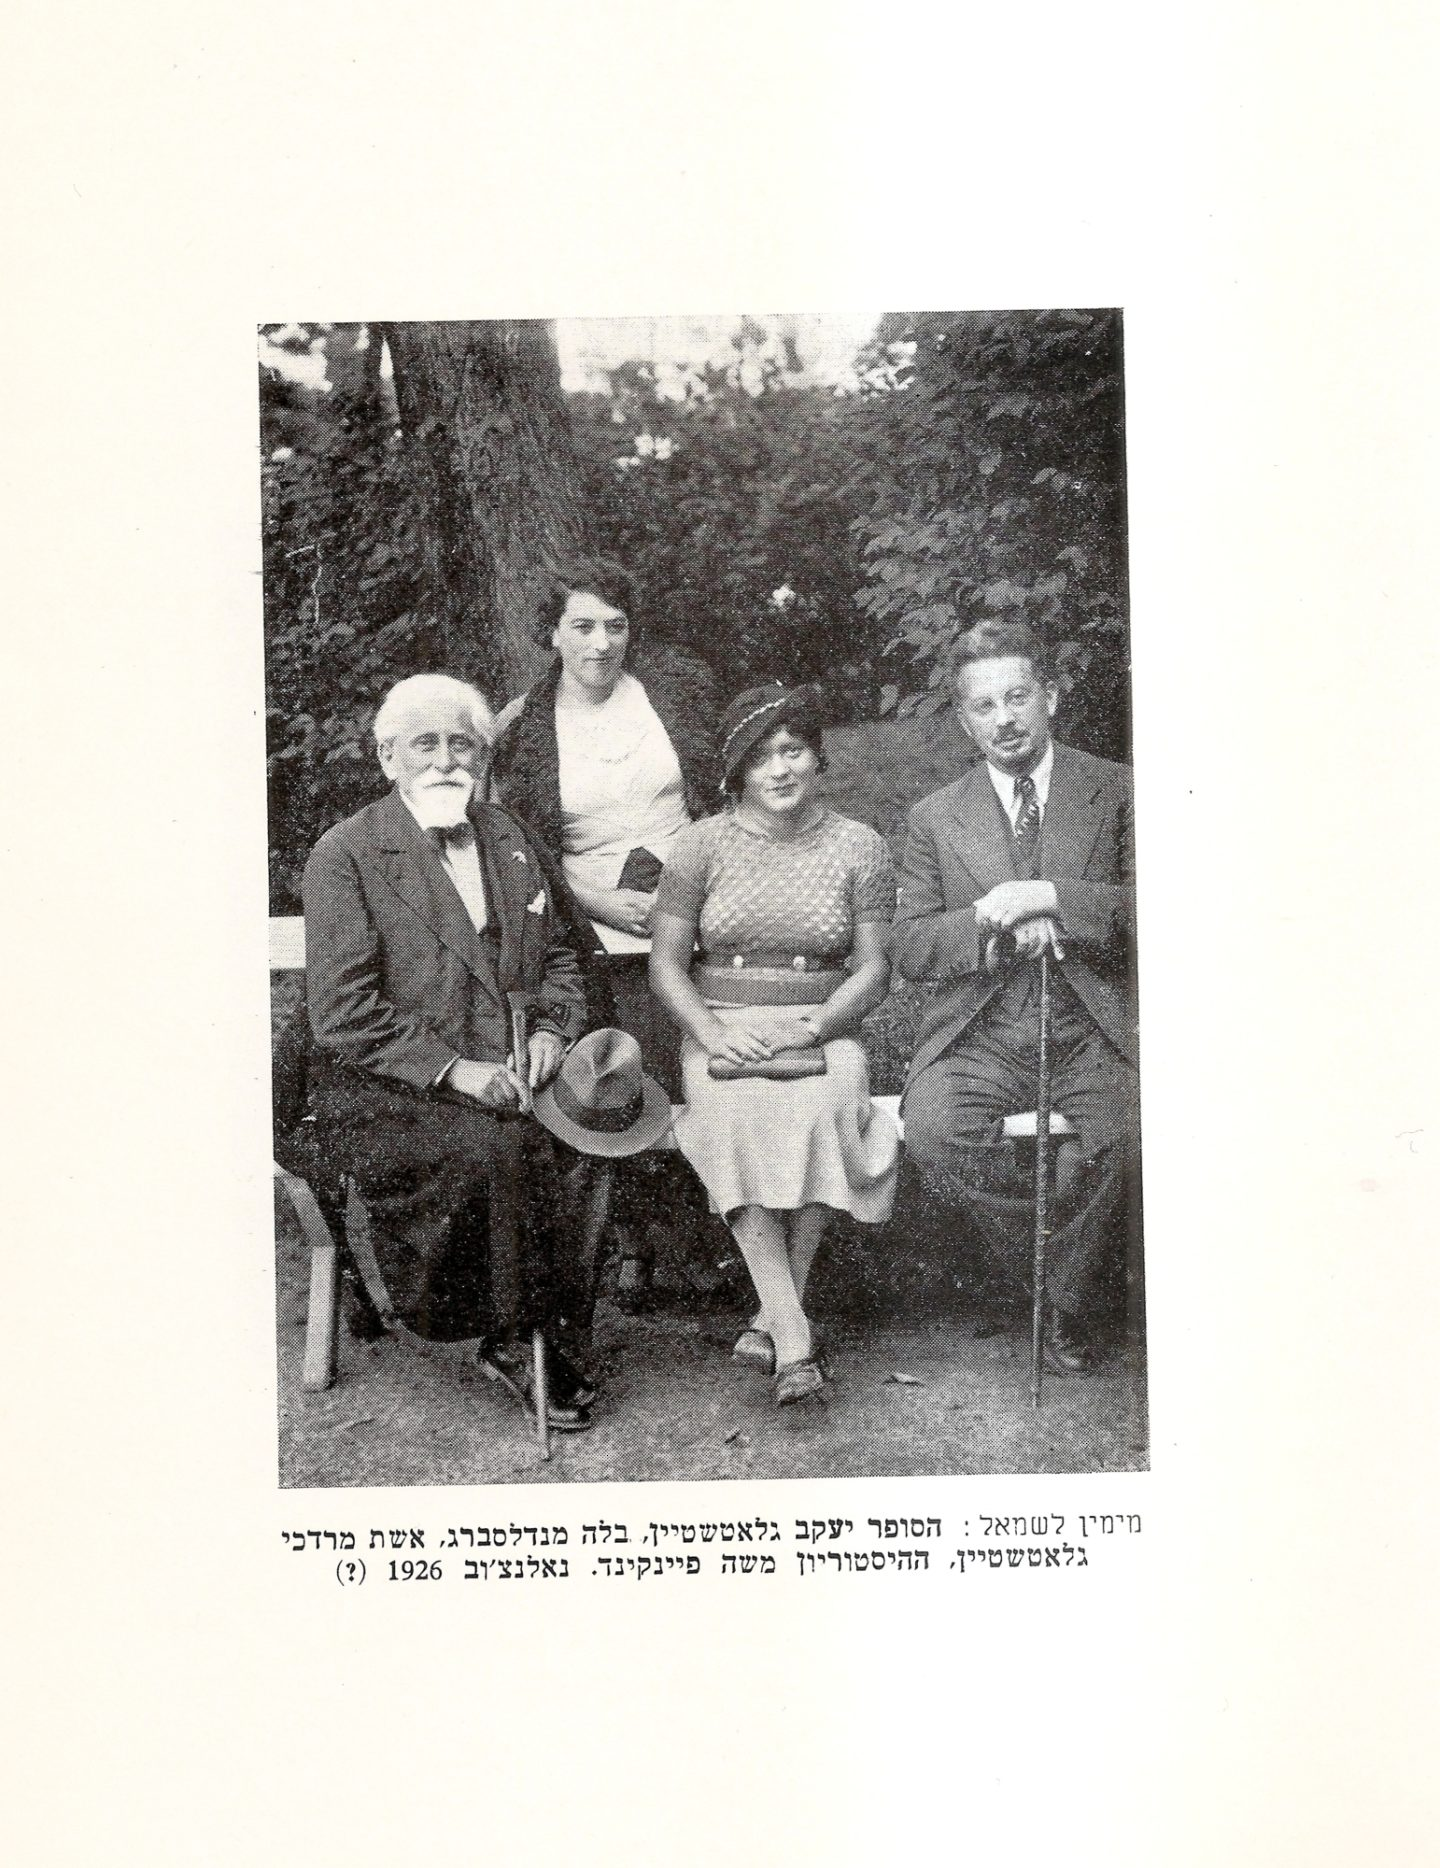 <p>From right to left: Jacob Glatstein, Bella Mandelsberg, Glatstein's sister-in-law, and Moshe Feinkind, in Nałęczów, from Bella Mandelsberg-Schildkraut's <em>Mekharim le-toldot Yehude Lublin</em> (Circle of Friends of the Late Bella Mandelsberg-Schildkraut:Tel-Aviv, 1965). Courtesy Monika Adamcyk-Garbowska.</p>